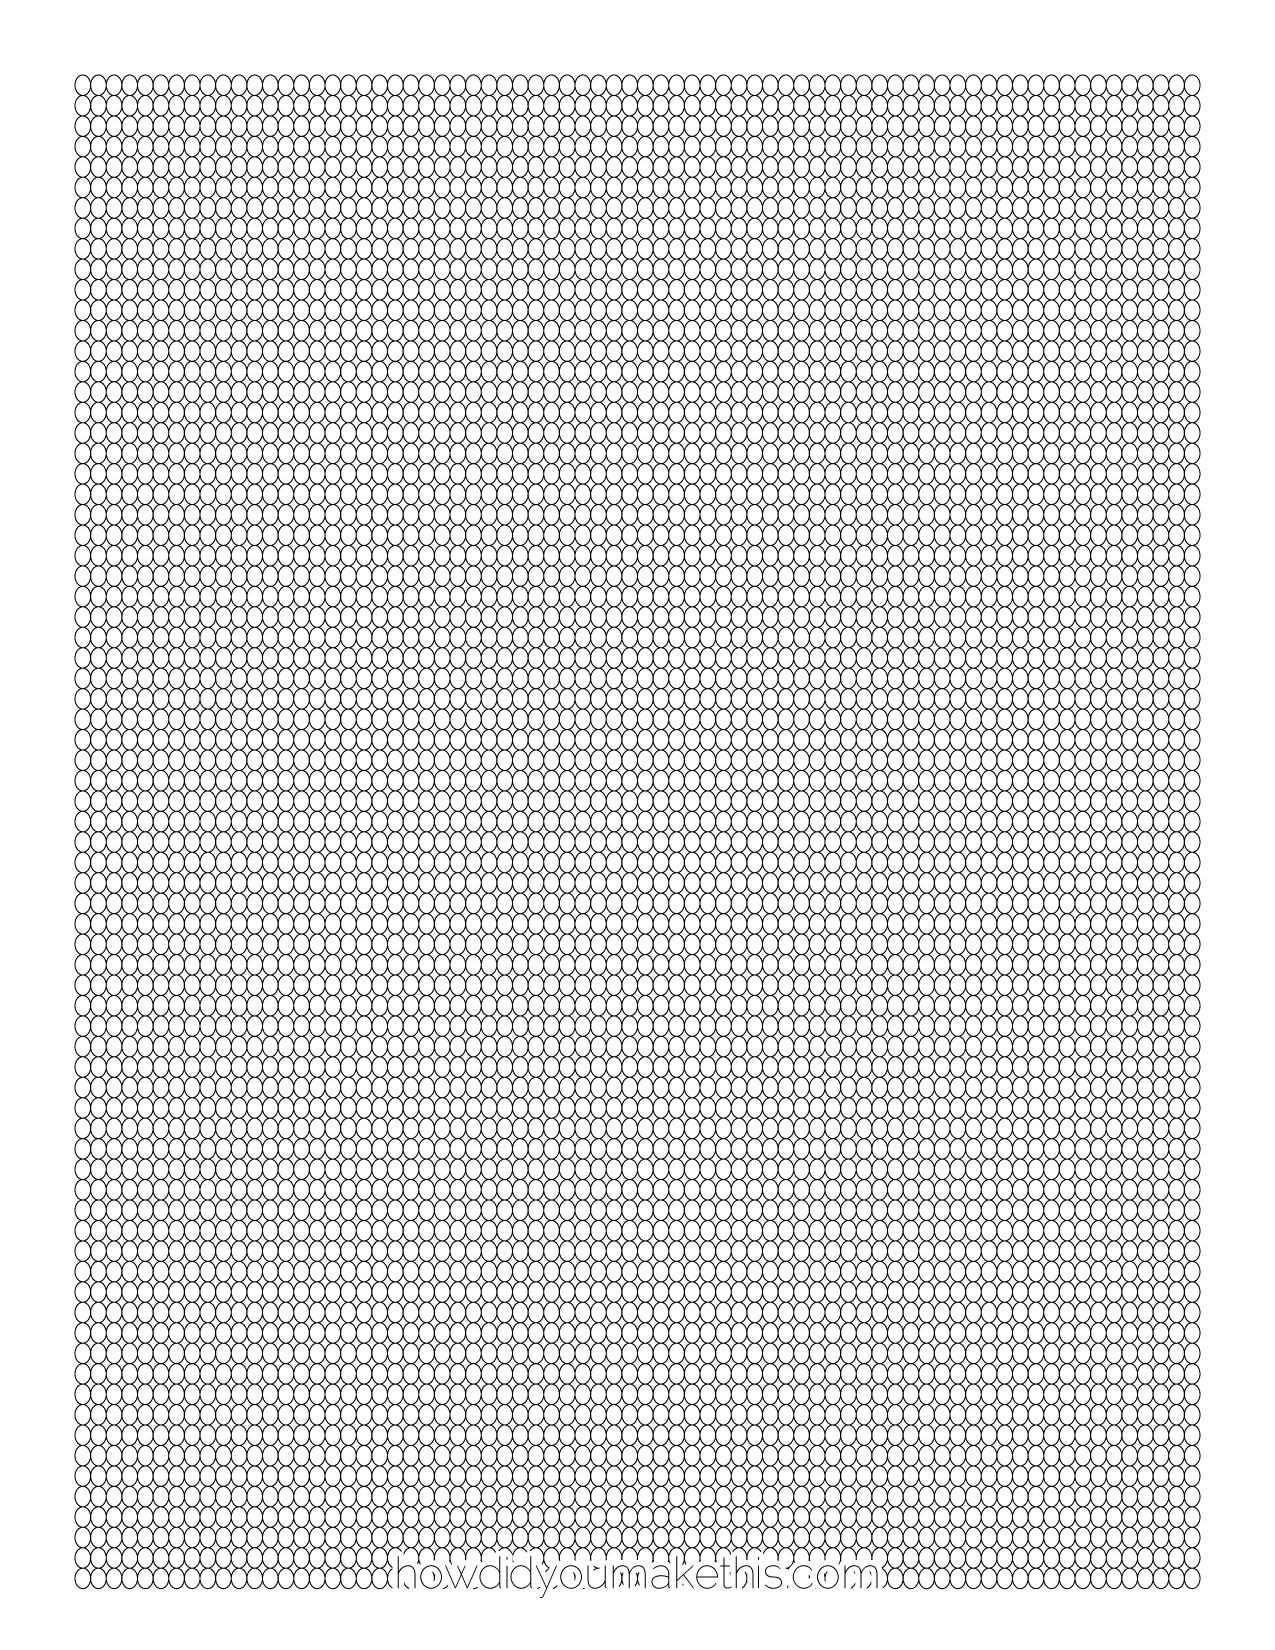 free loom graph paper - Google Search | Seed pattern | Pinterest ...